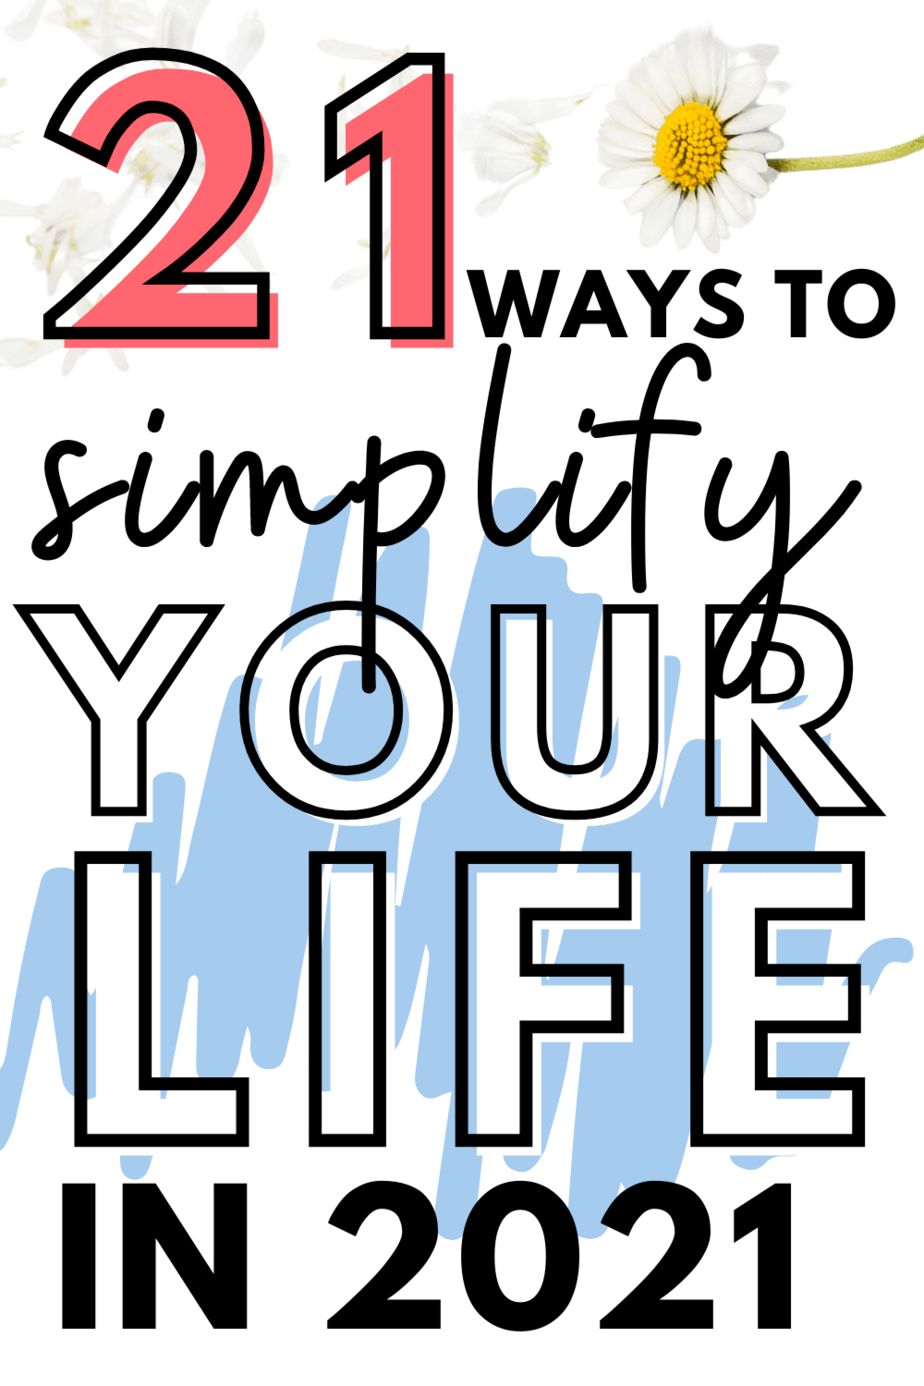 2020 was a rough year. Here are 21 amazing ideas for how to simplify your life in 2021 in all the areas of your life and finances.